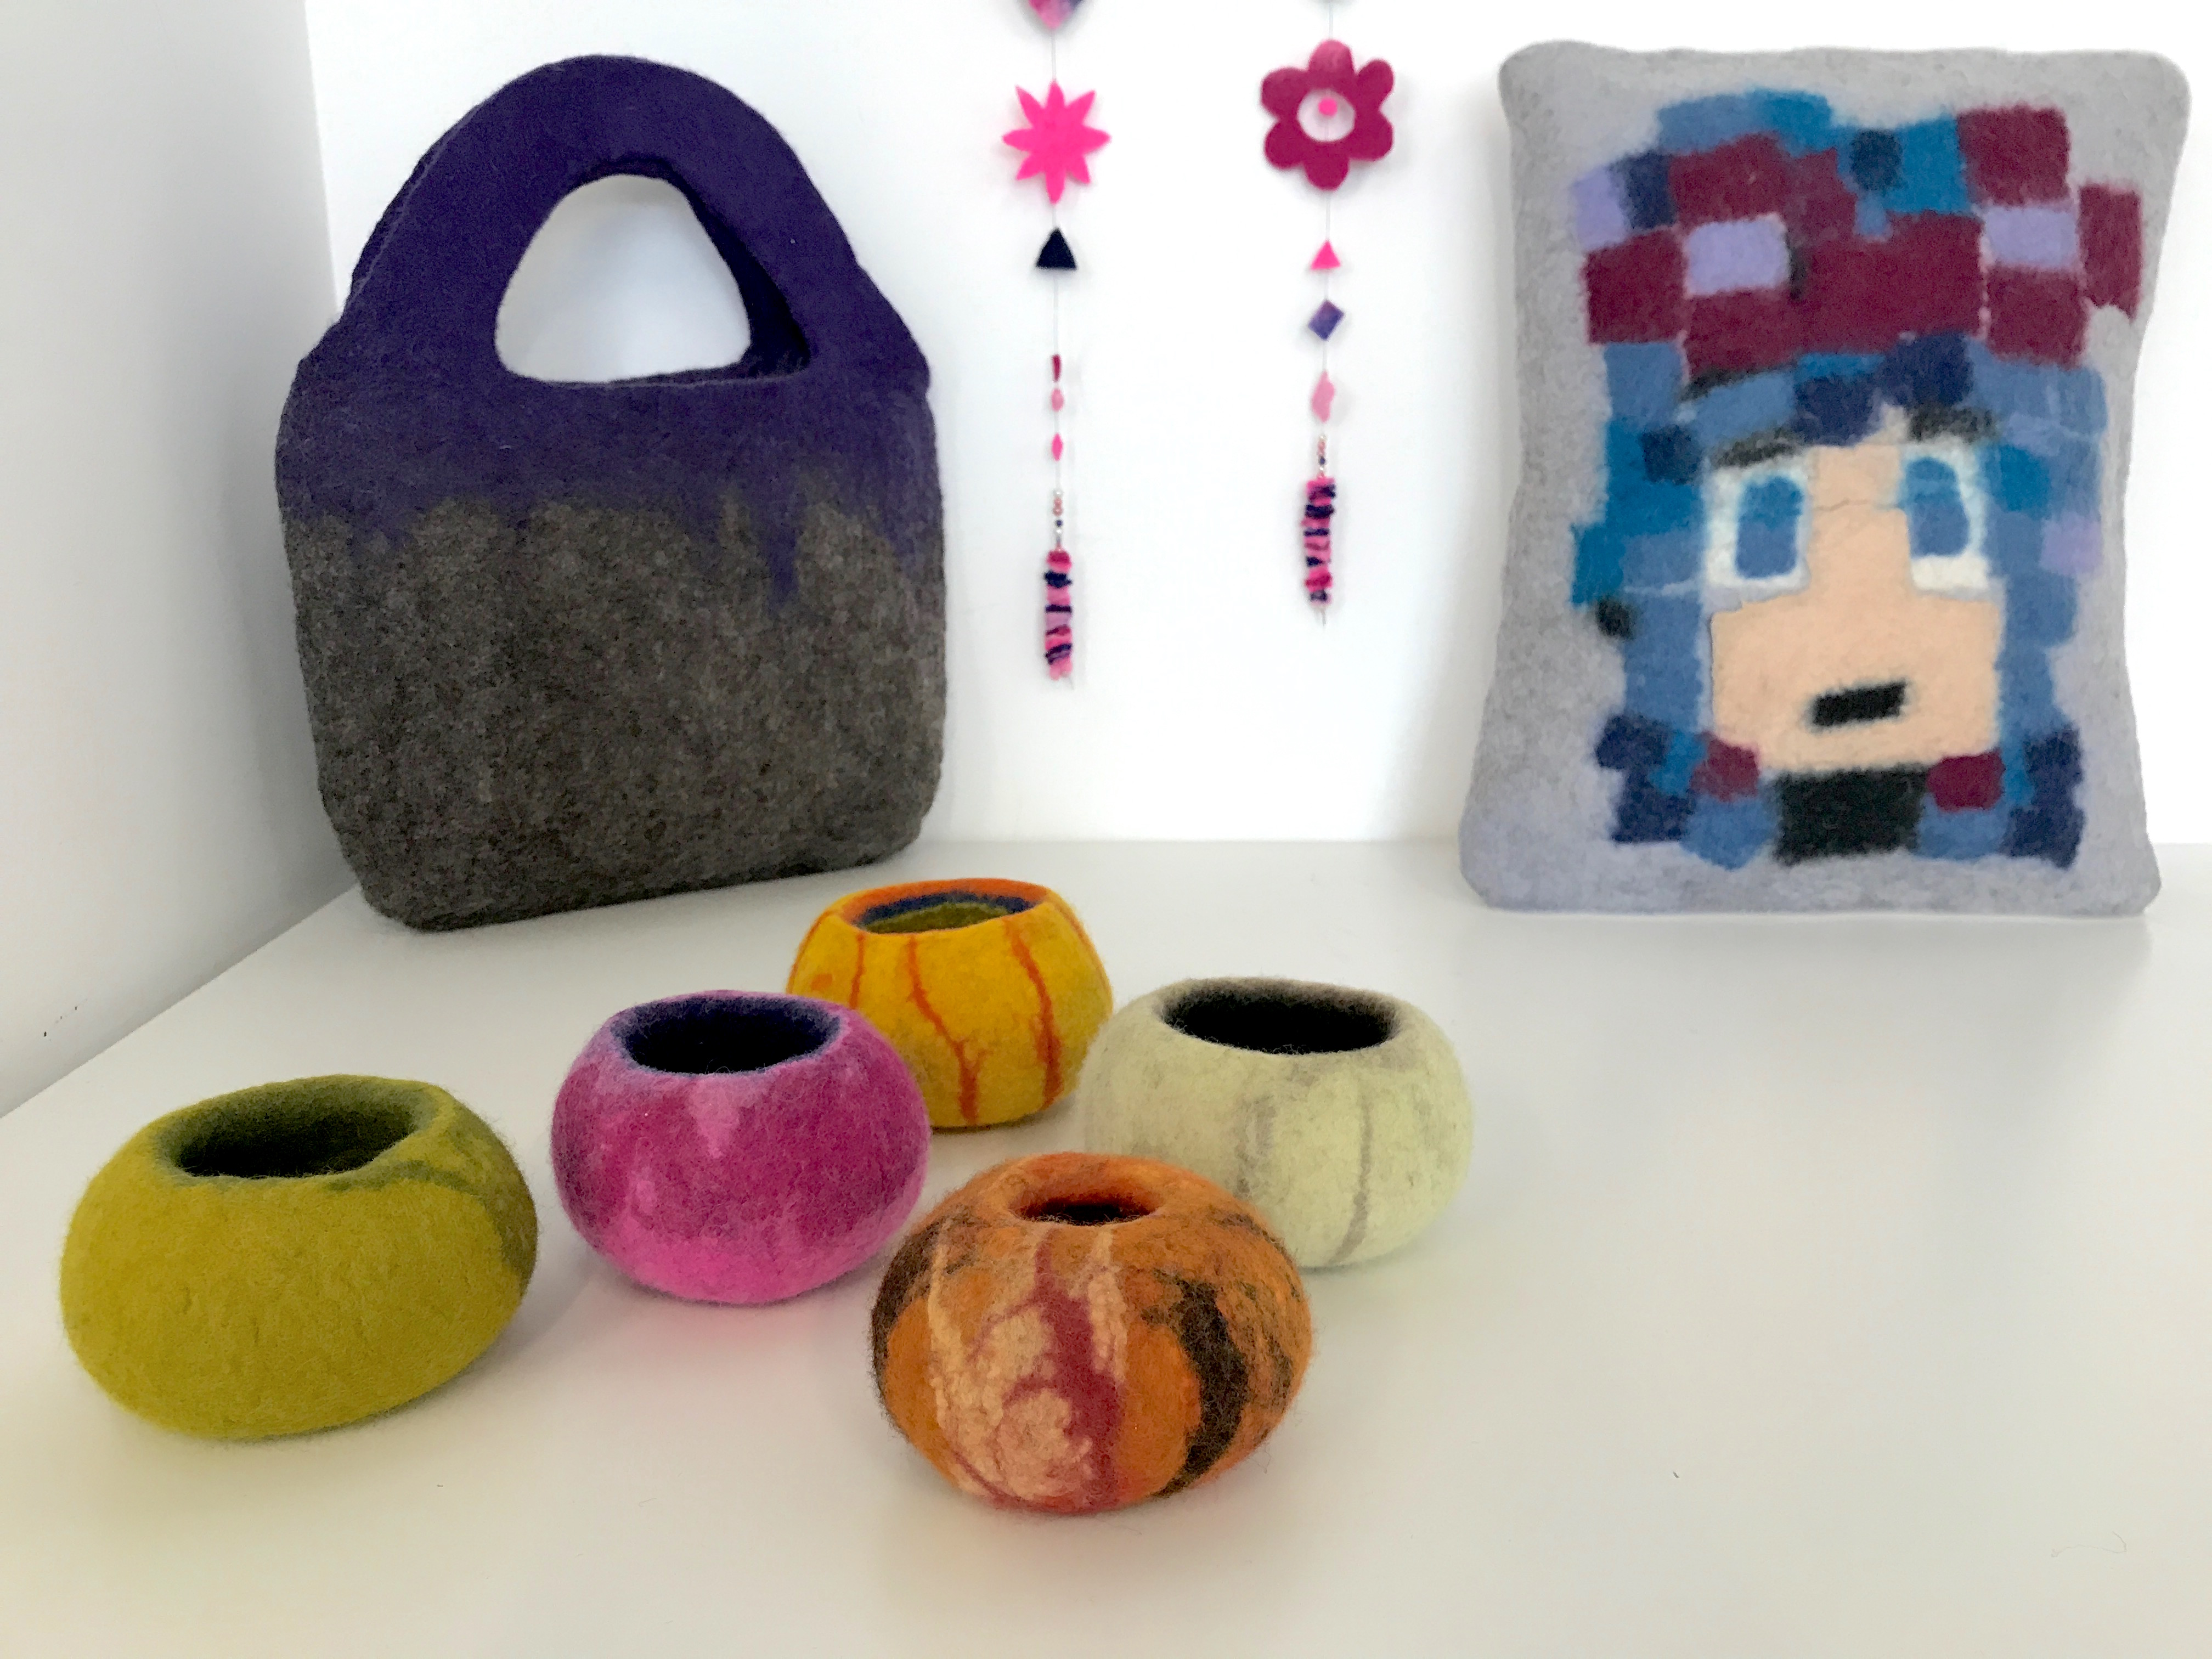 Just for You: Wet Felting/Felt making Tuition - 2D and 3D by Tabletop Workshops @ Purr & Wag It - crafts in London